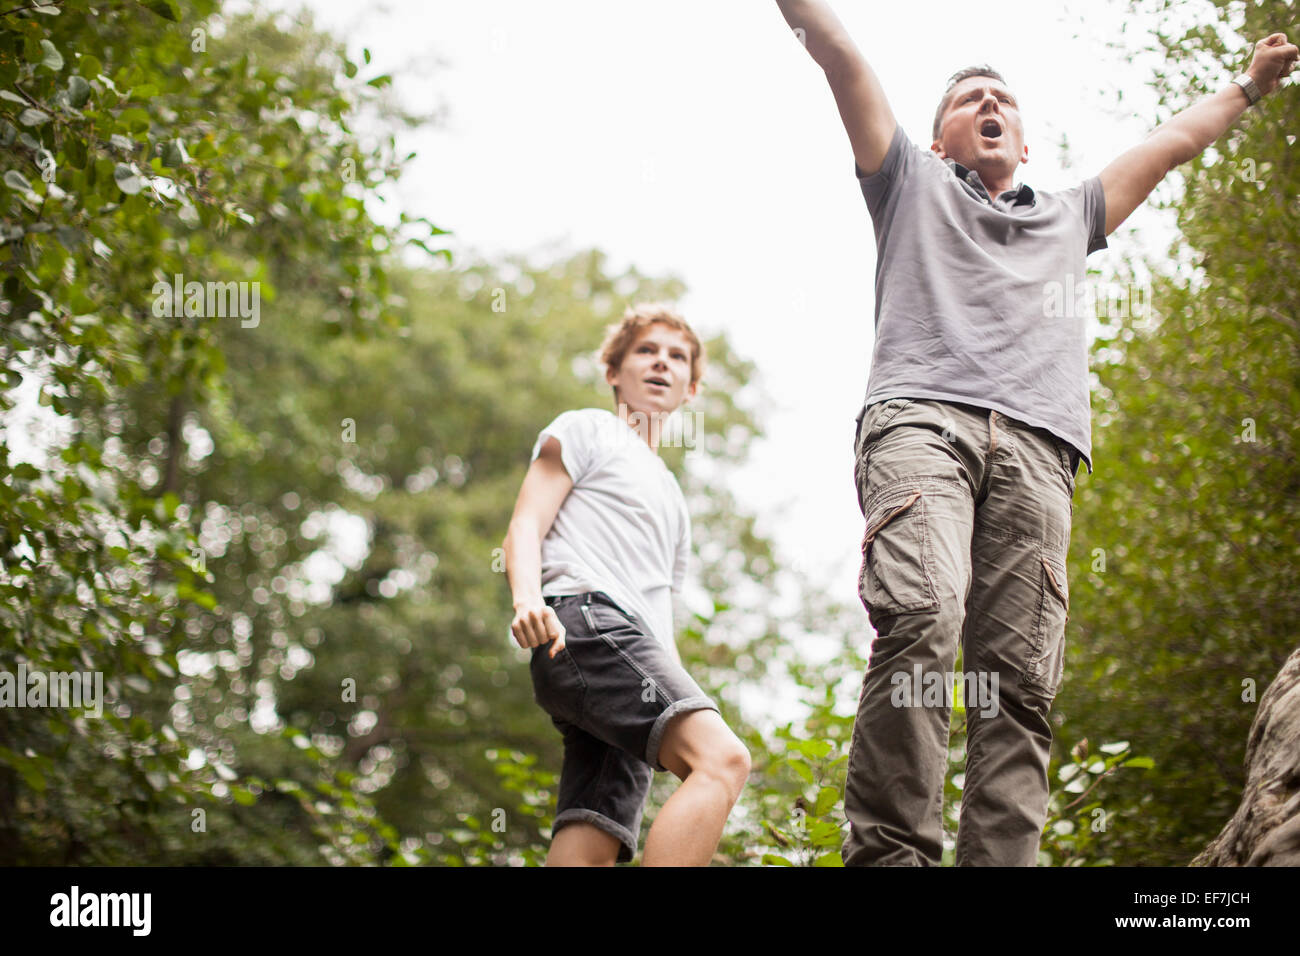 Father and son enjoying in a park - Stock Image